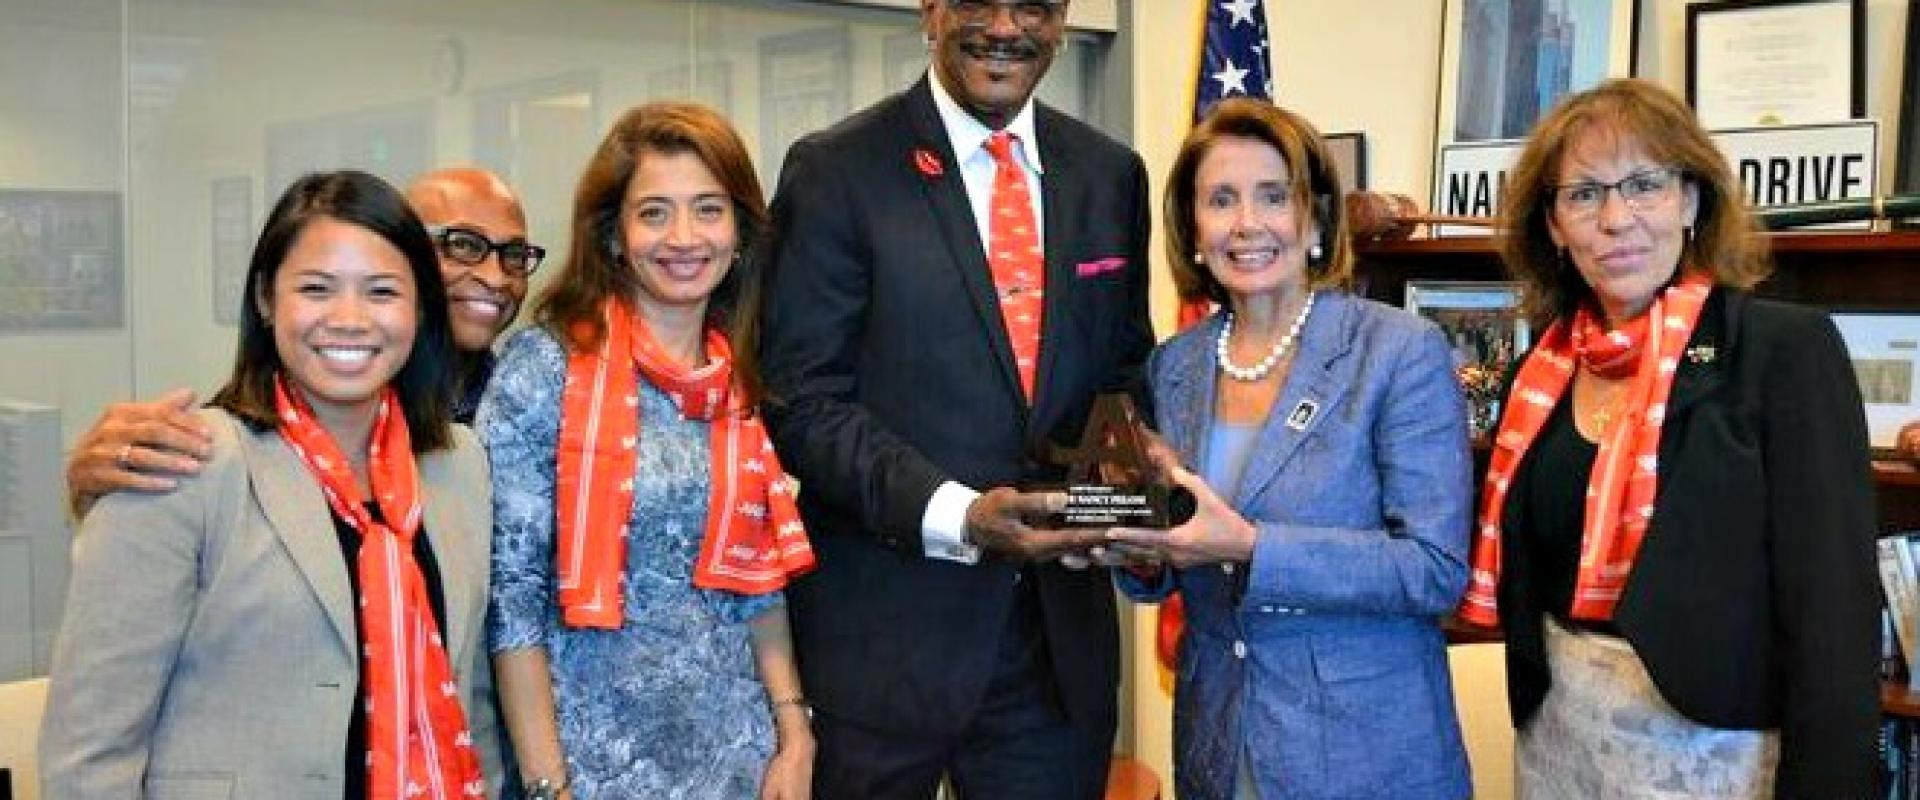 Congresswoman Pelosi met with staff and volunteers from AARP in San Francisco as they celebrated the 81st anniversary of Social Security. During the meeting, Pelosi was honored by AARP with the Congressional Legislative Award.